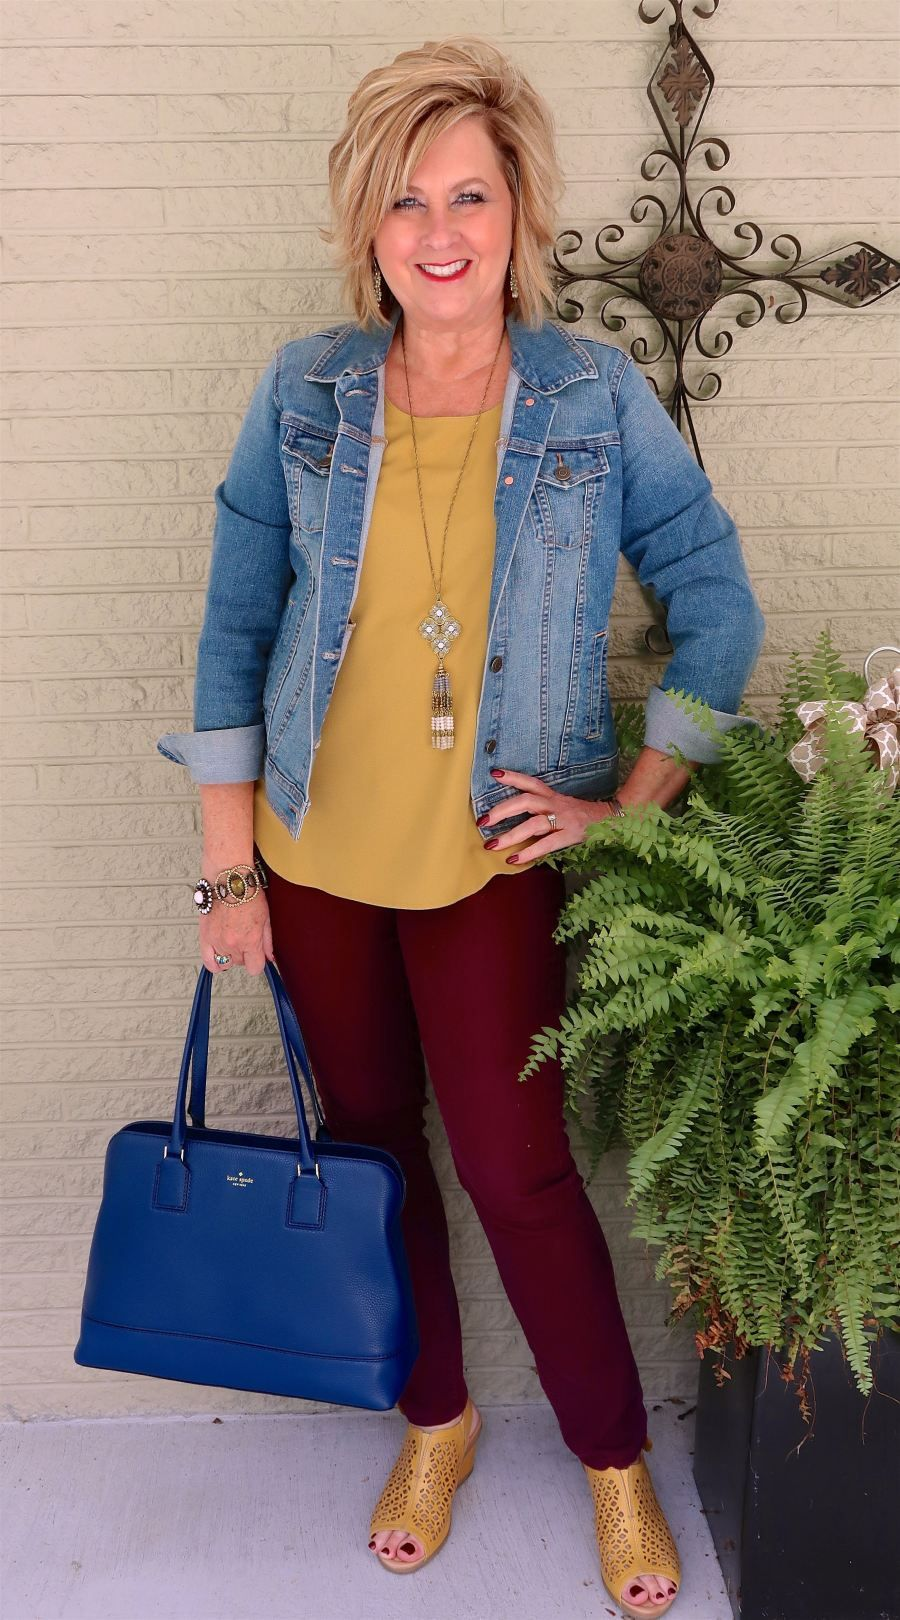 The Female Tendency And The 40 S Look: MUSTARD WILL BE A HOT COLOR FOR FALL